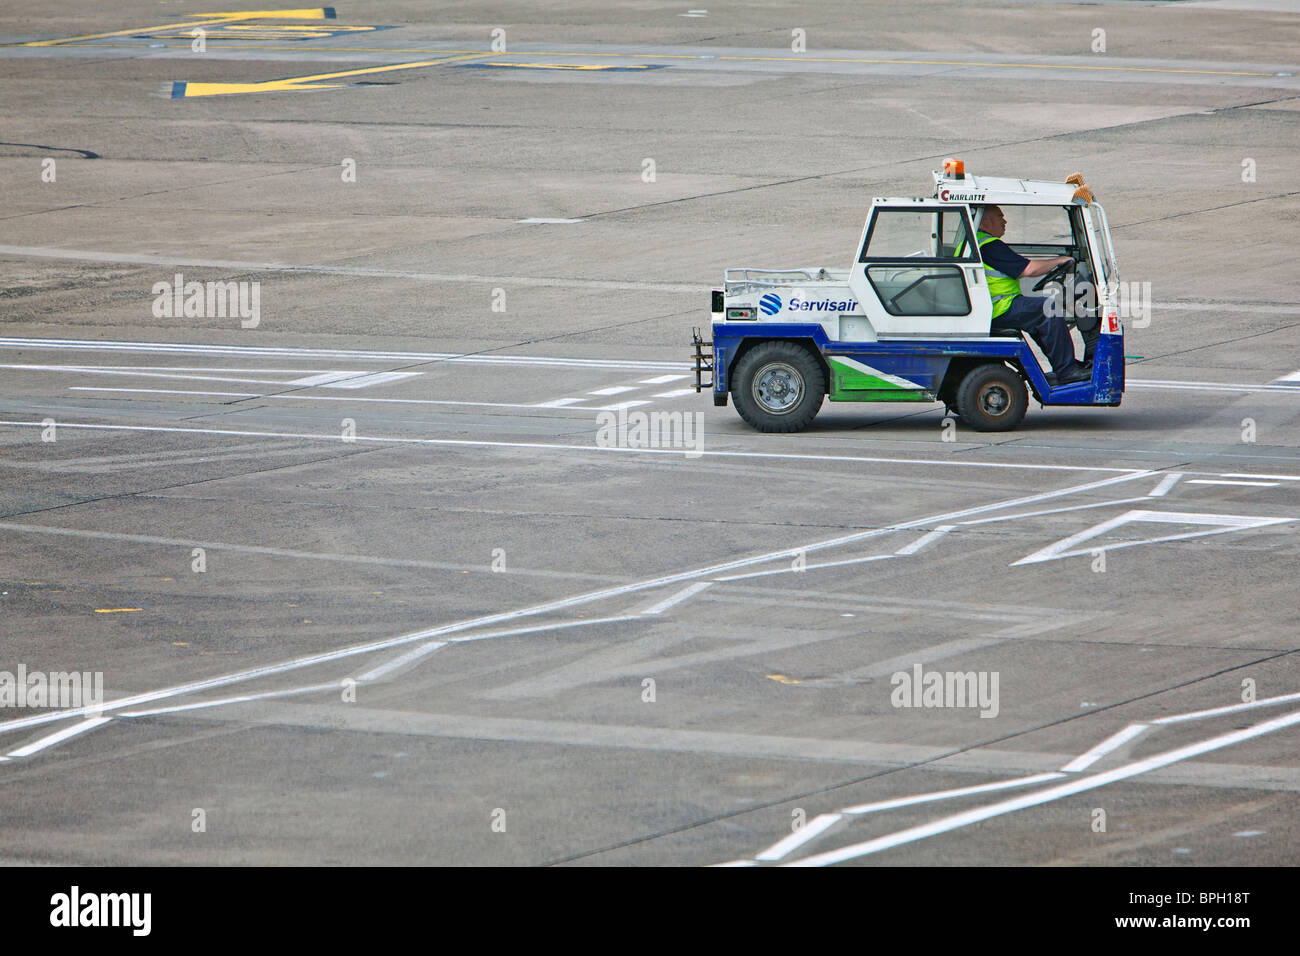 Small Servisair airport support vehicle on the tarmac - Stock Image